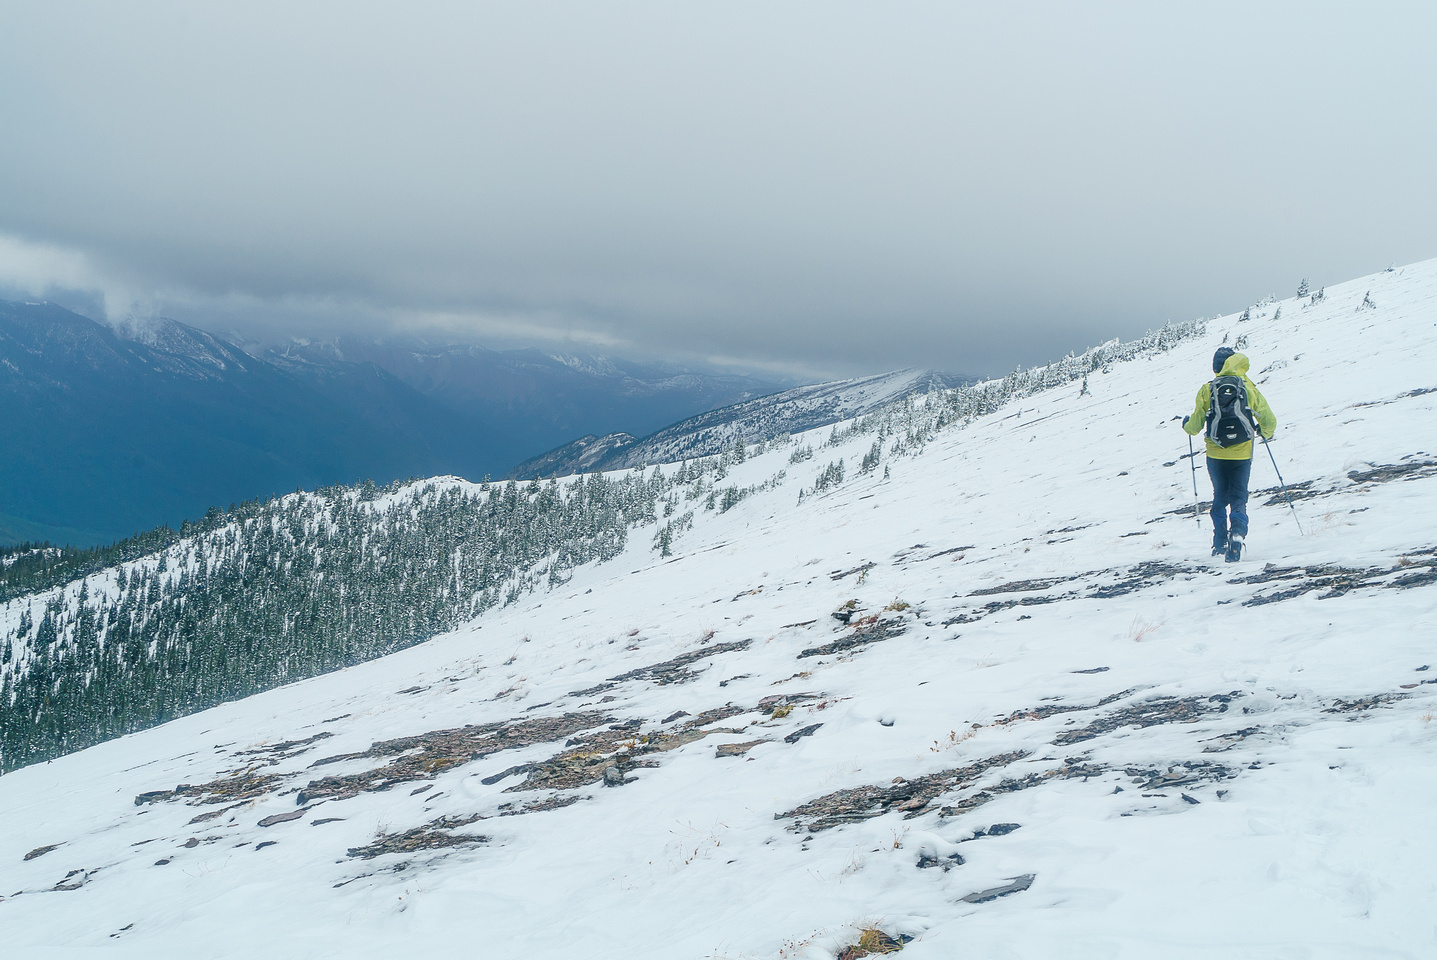 This was the rest of our day - traversing in gray, windy, rainy, cold conditions. It was great fun!